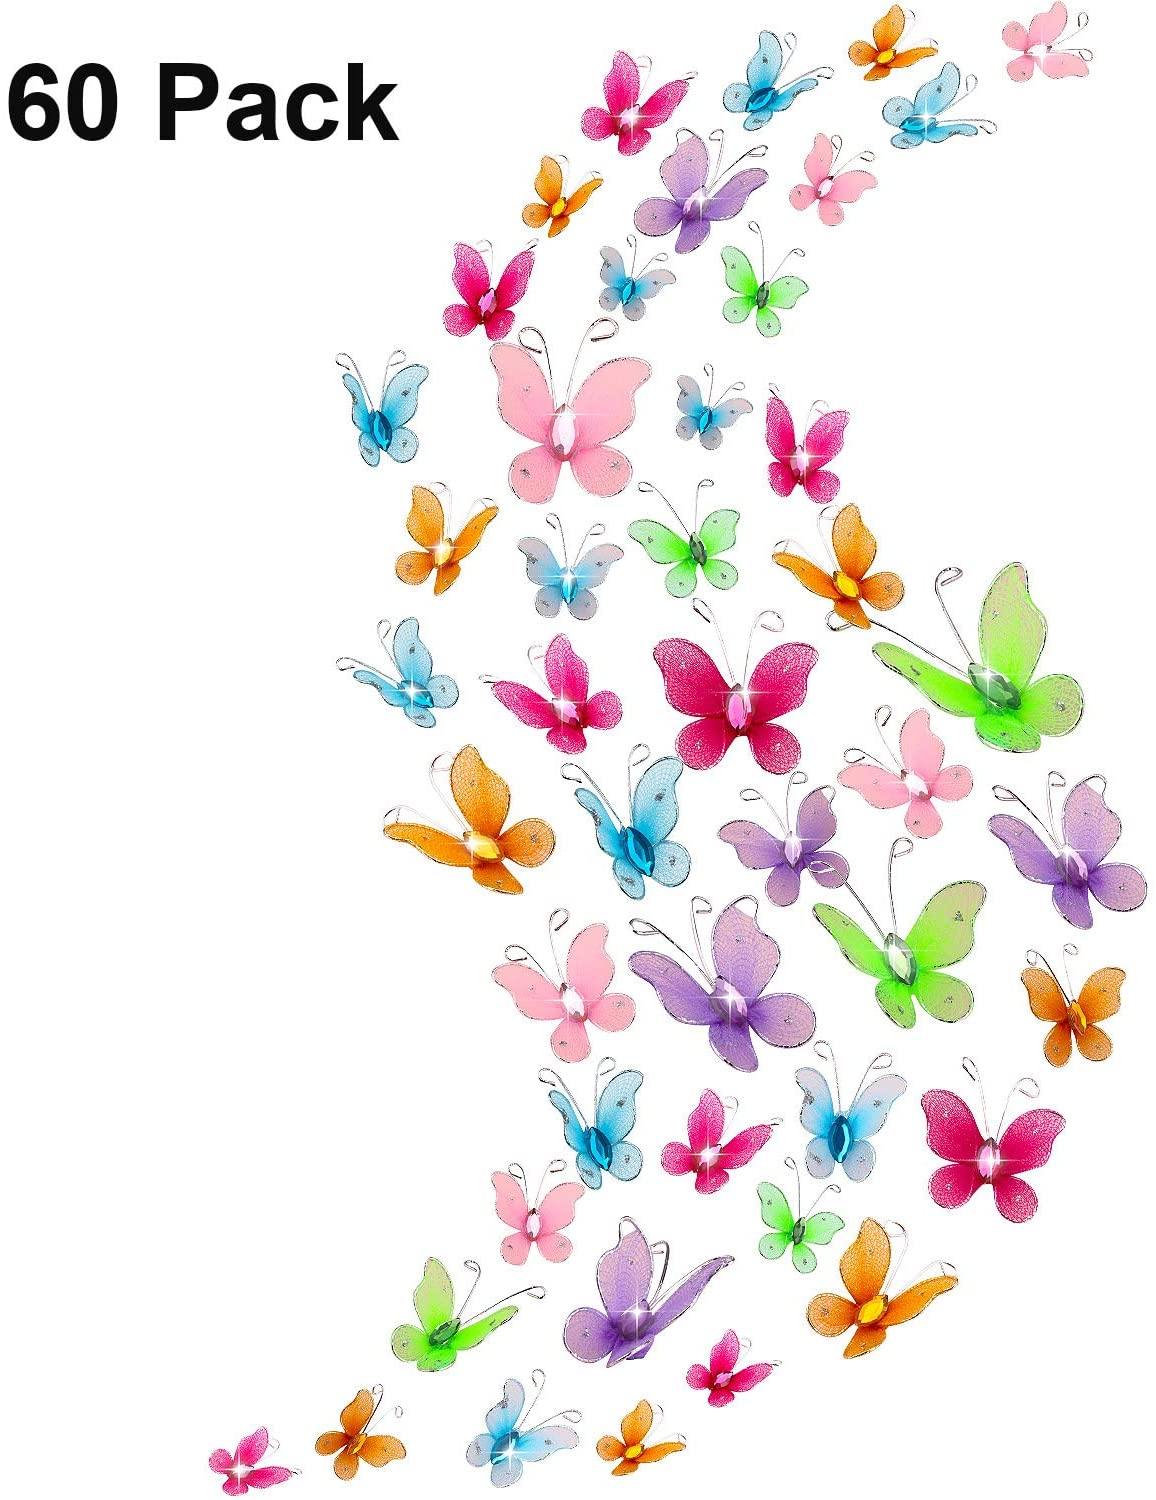 60 Pieces Colorful Butterflies Set, Nylon Butterflies Wire Butterfly with Delicate Gem for Home and Wedding Table Scatter Scrapbook Craft Card Decoration, 2 Sizes (3 cm and 5 cm)